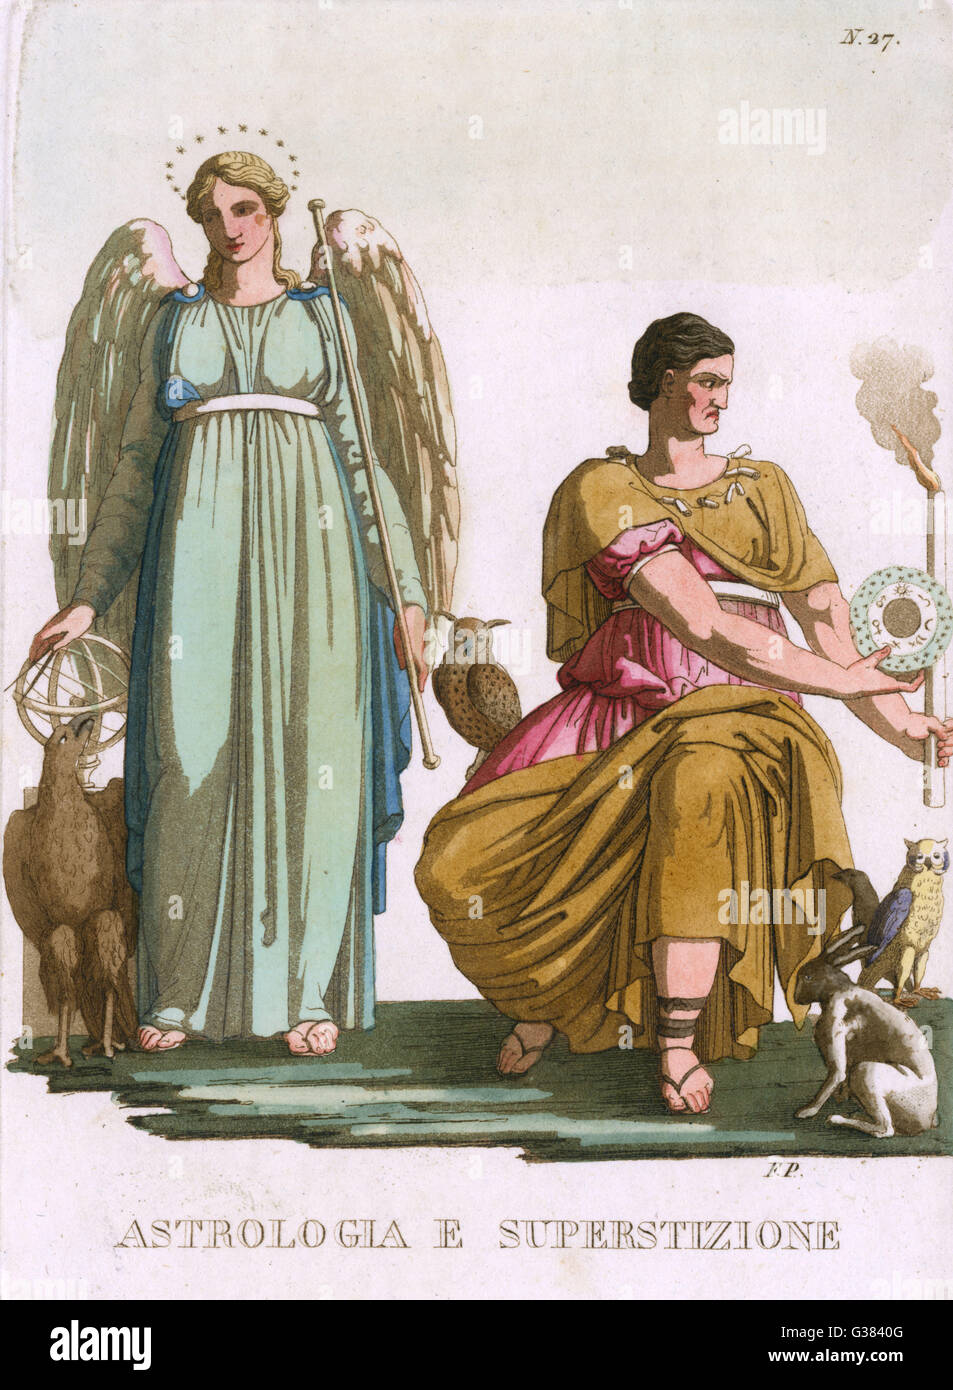 ASTROLOGIA E SUPERSTIZIONE  astrology admired, superstition scorned       Date: 18th century - Stock Image